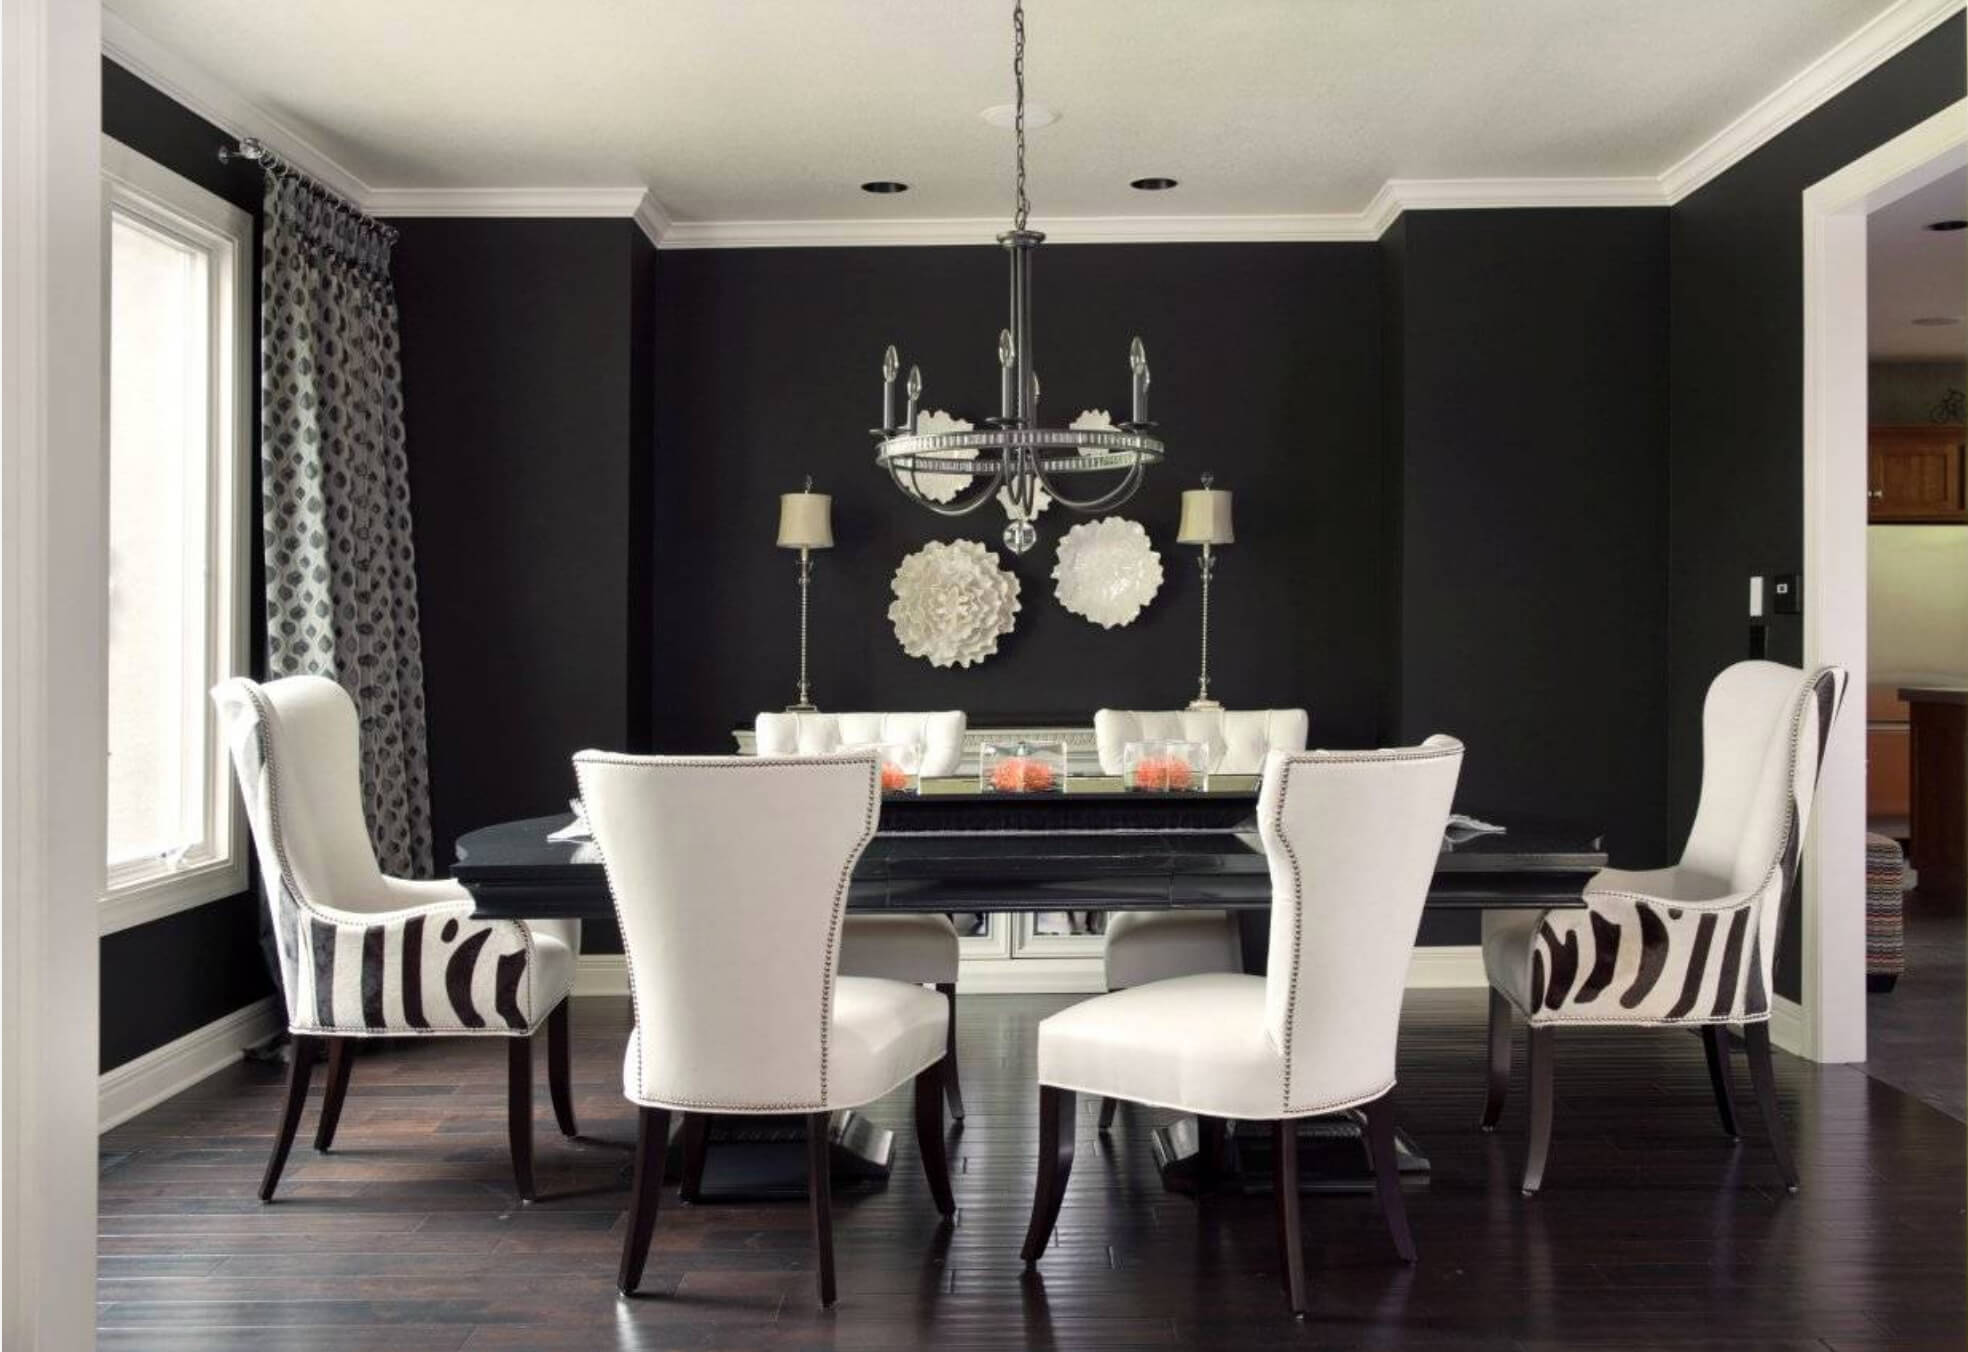 High Quality 10 Creative Ideas For Dining Room Walls